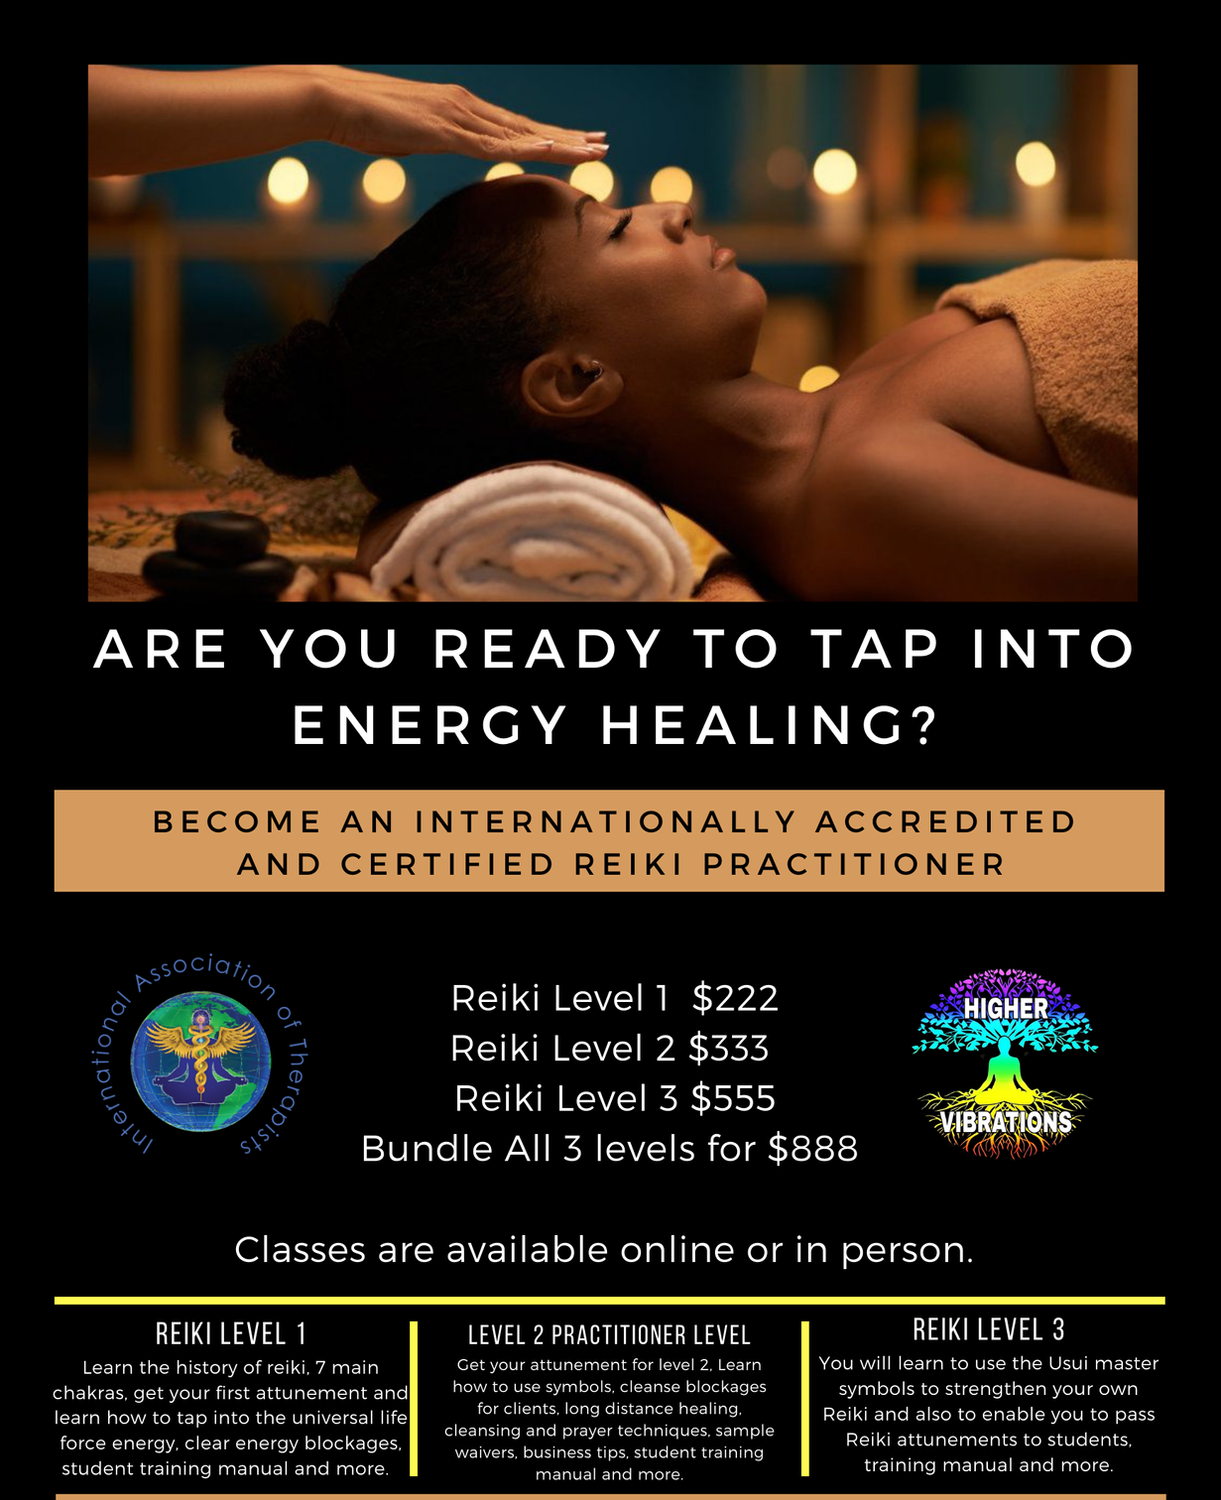 Reiki Levels 1, 2 and 3